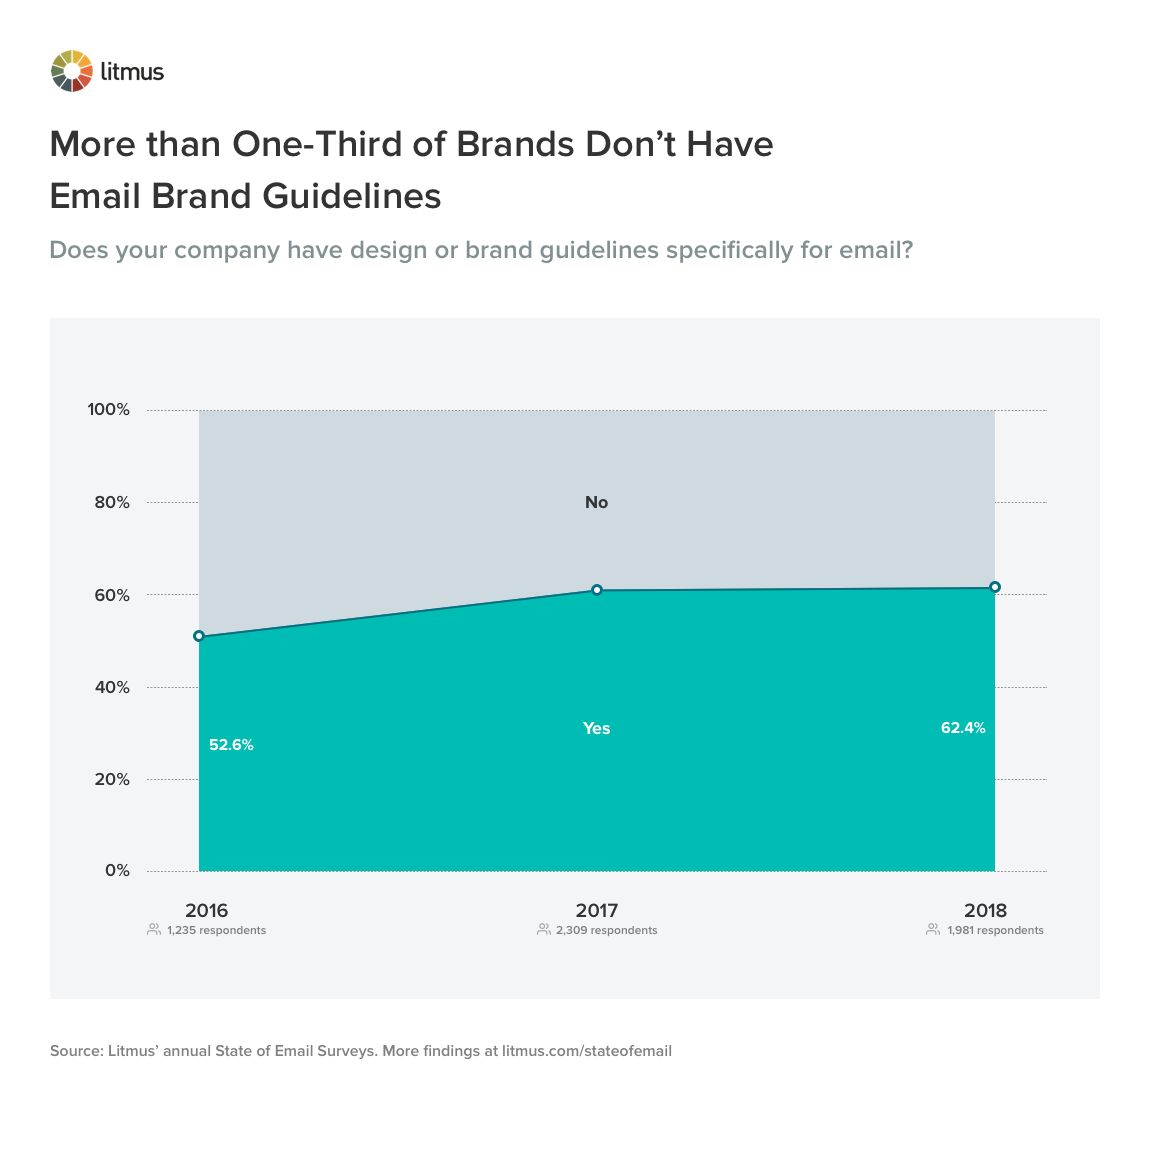 More that One-Third of Brands Don't Have Email Brand Guidelines